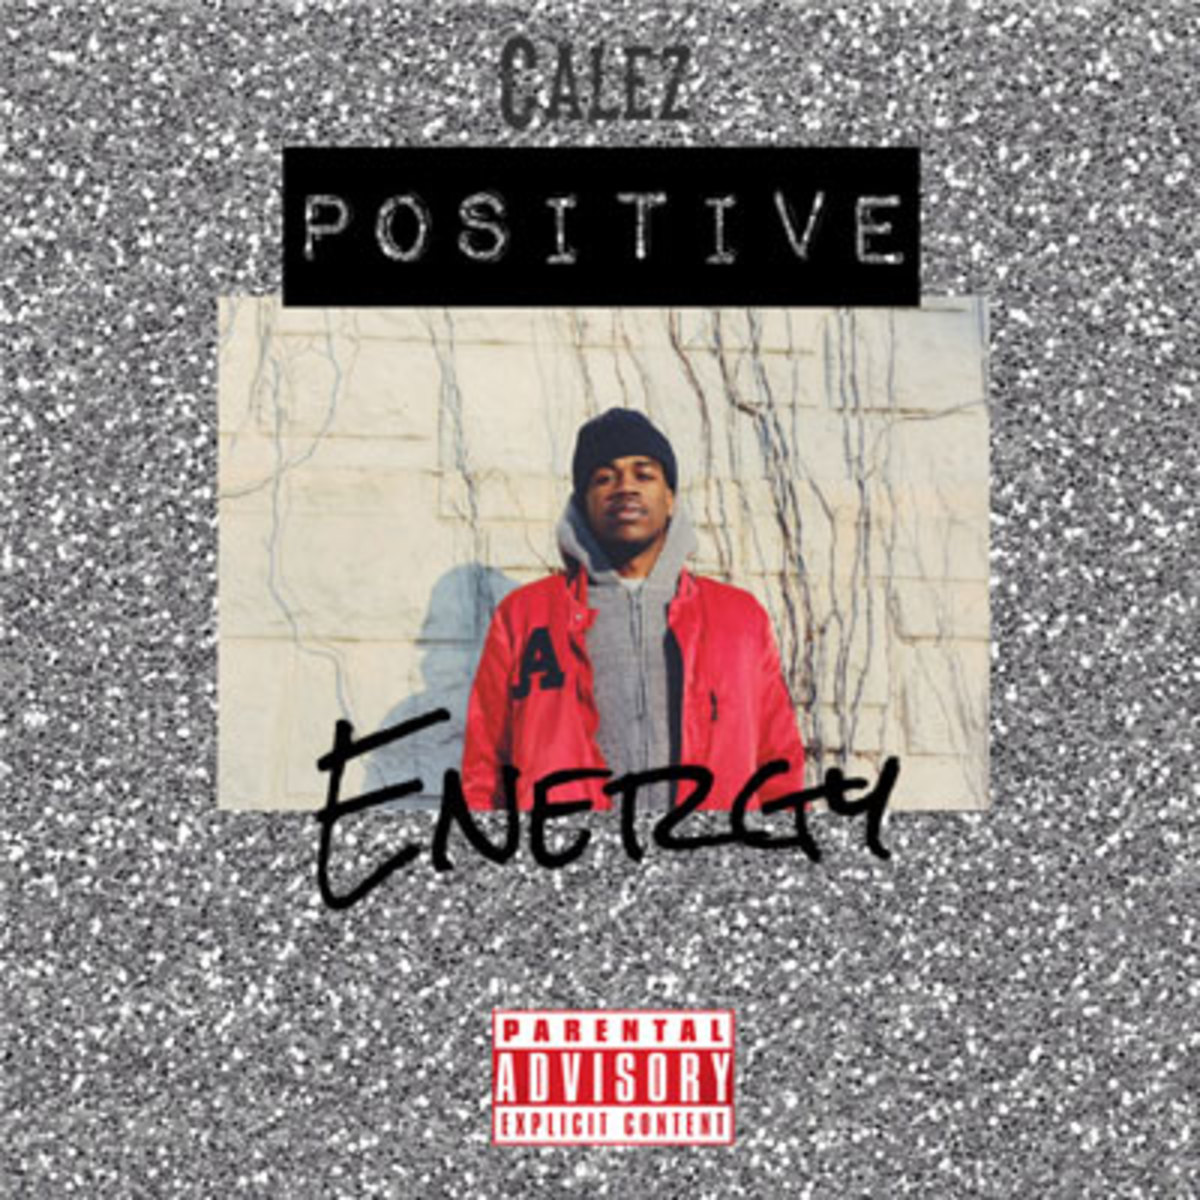 calez-positiveenergy.jpg